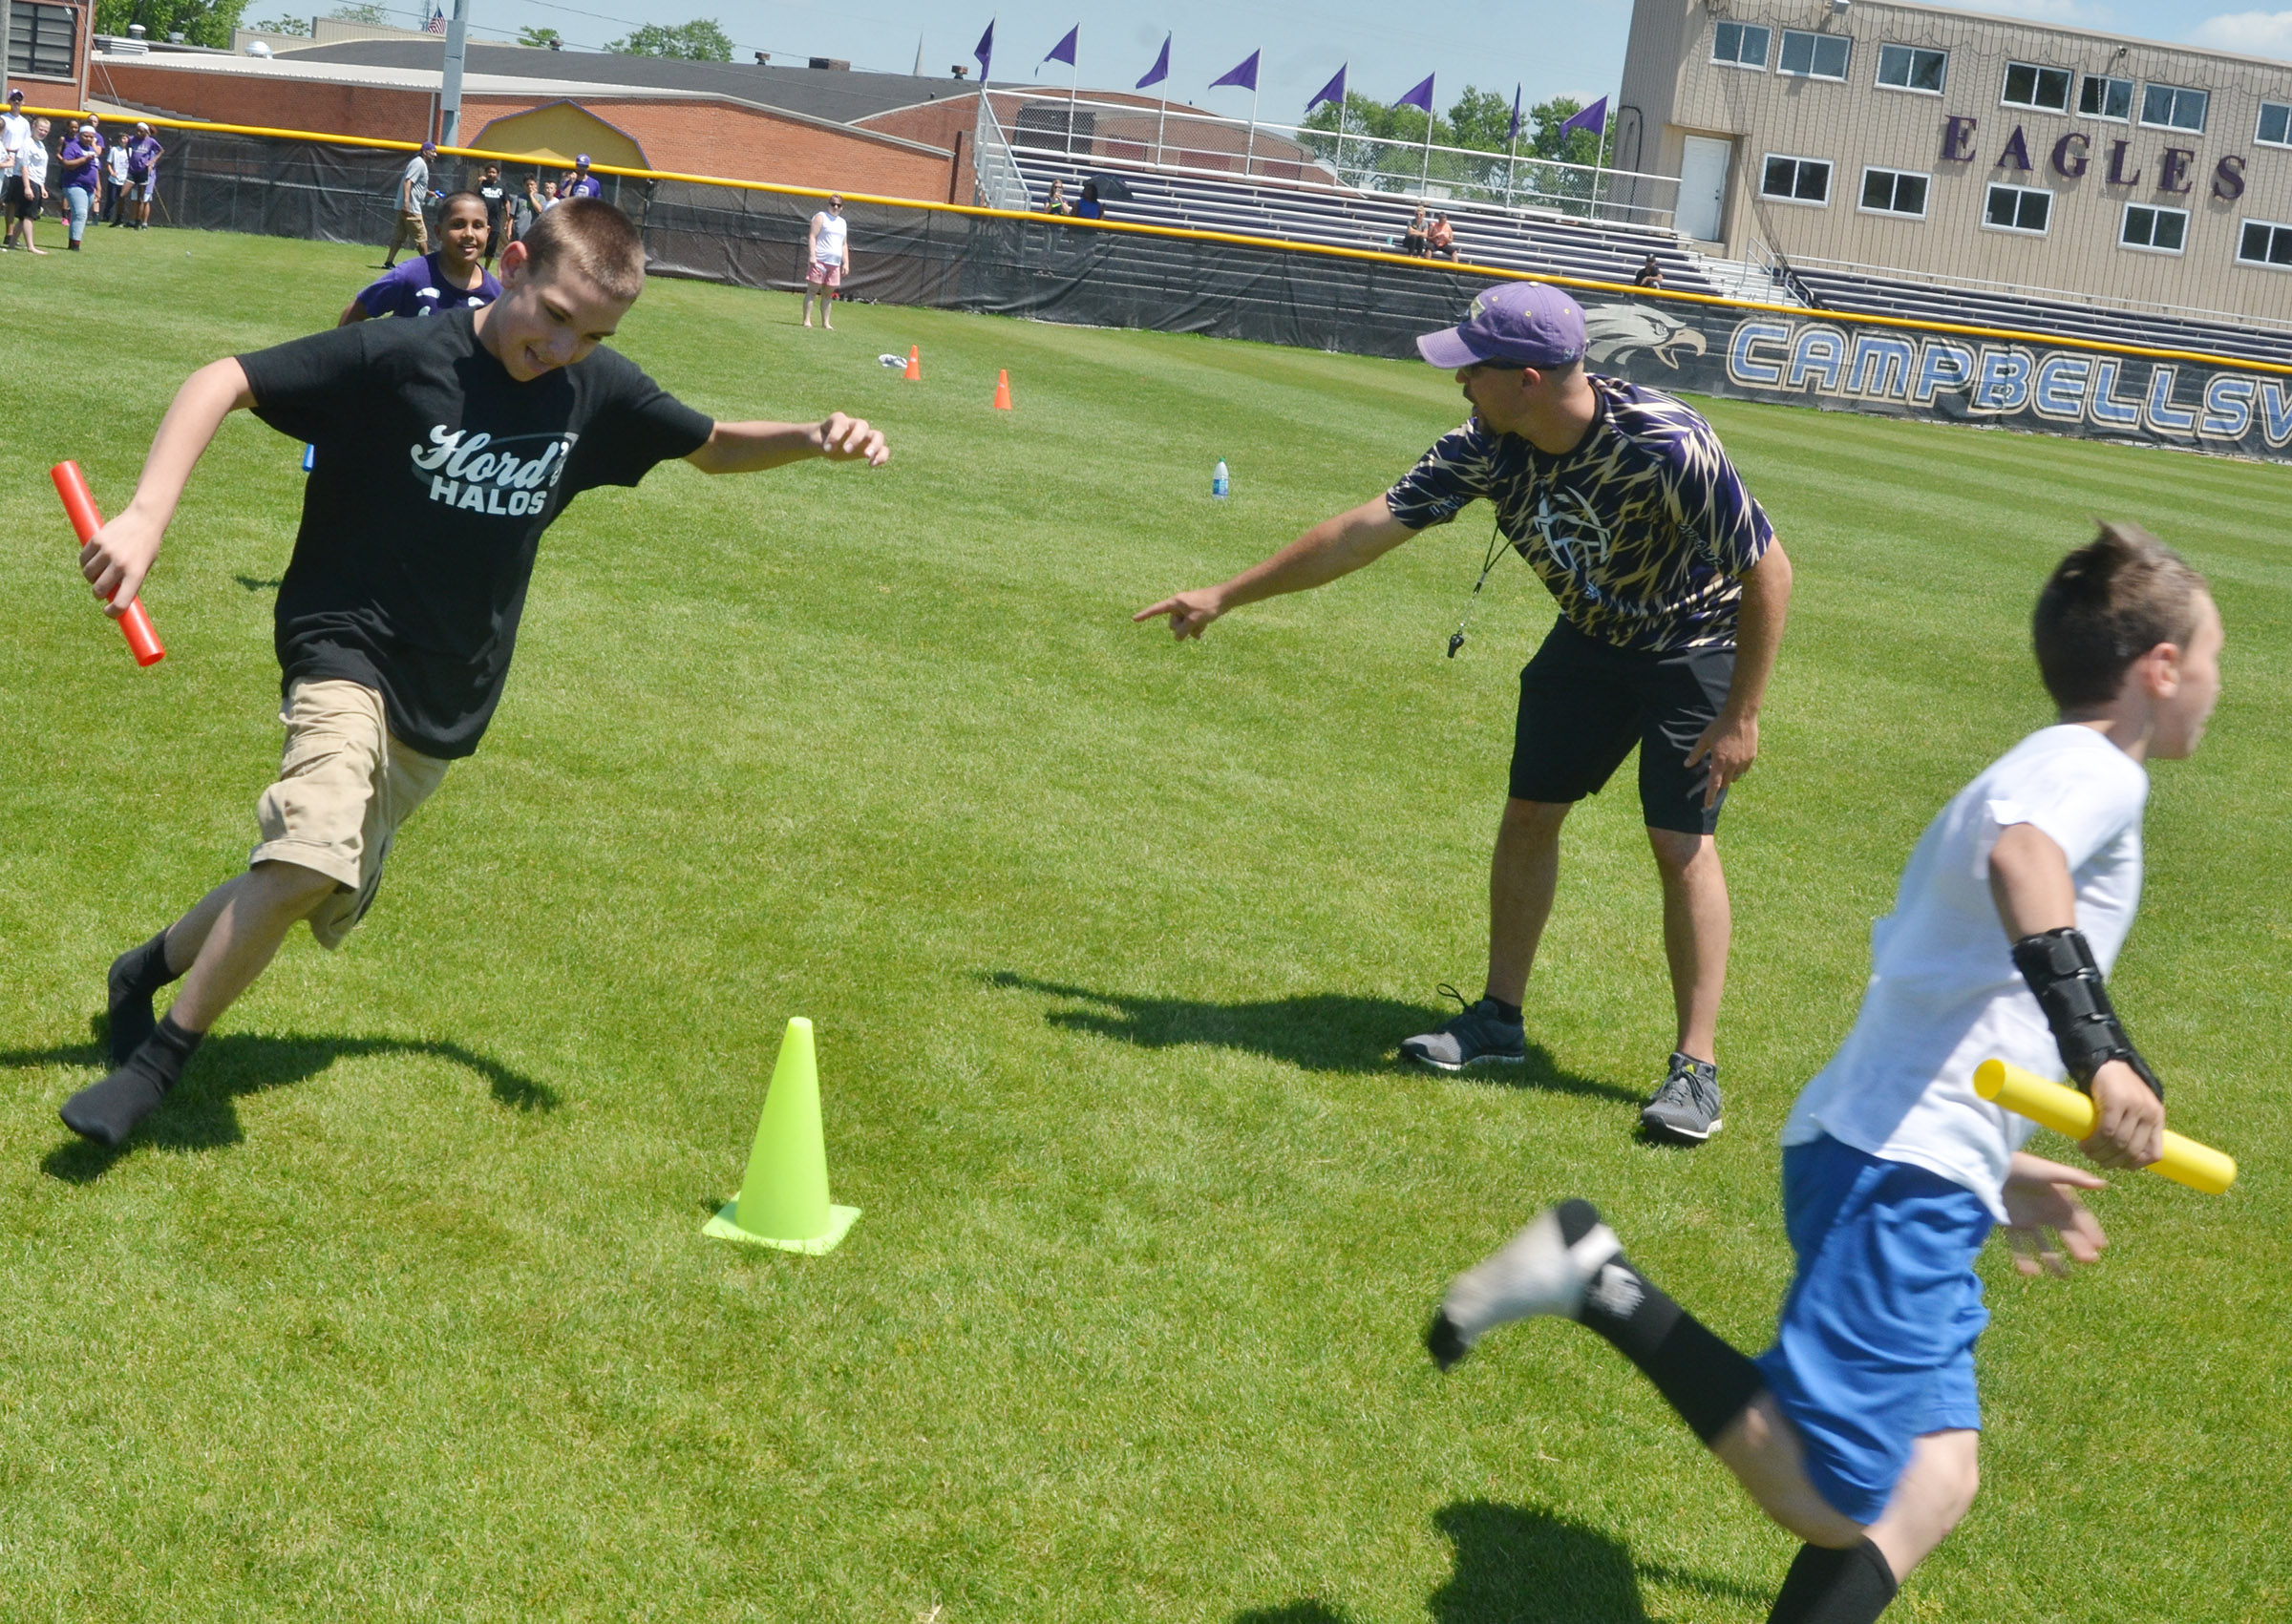 CMS sixth-grader Nate Mitchell and his classmates run in the 4x4 relay race.